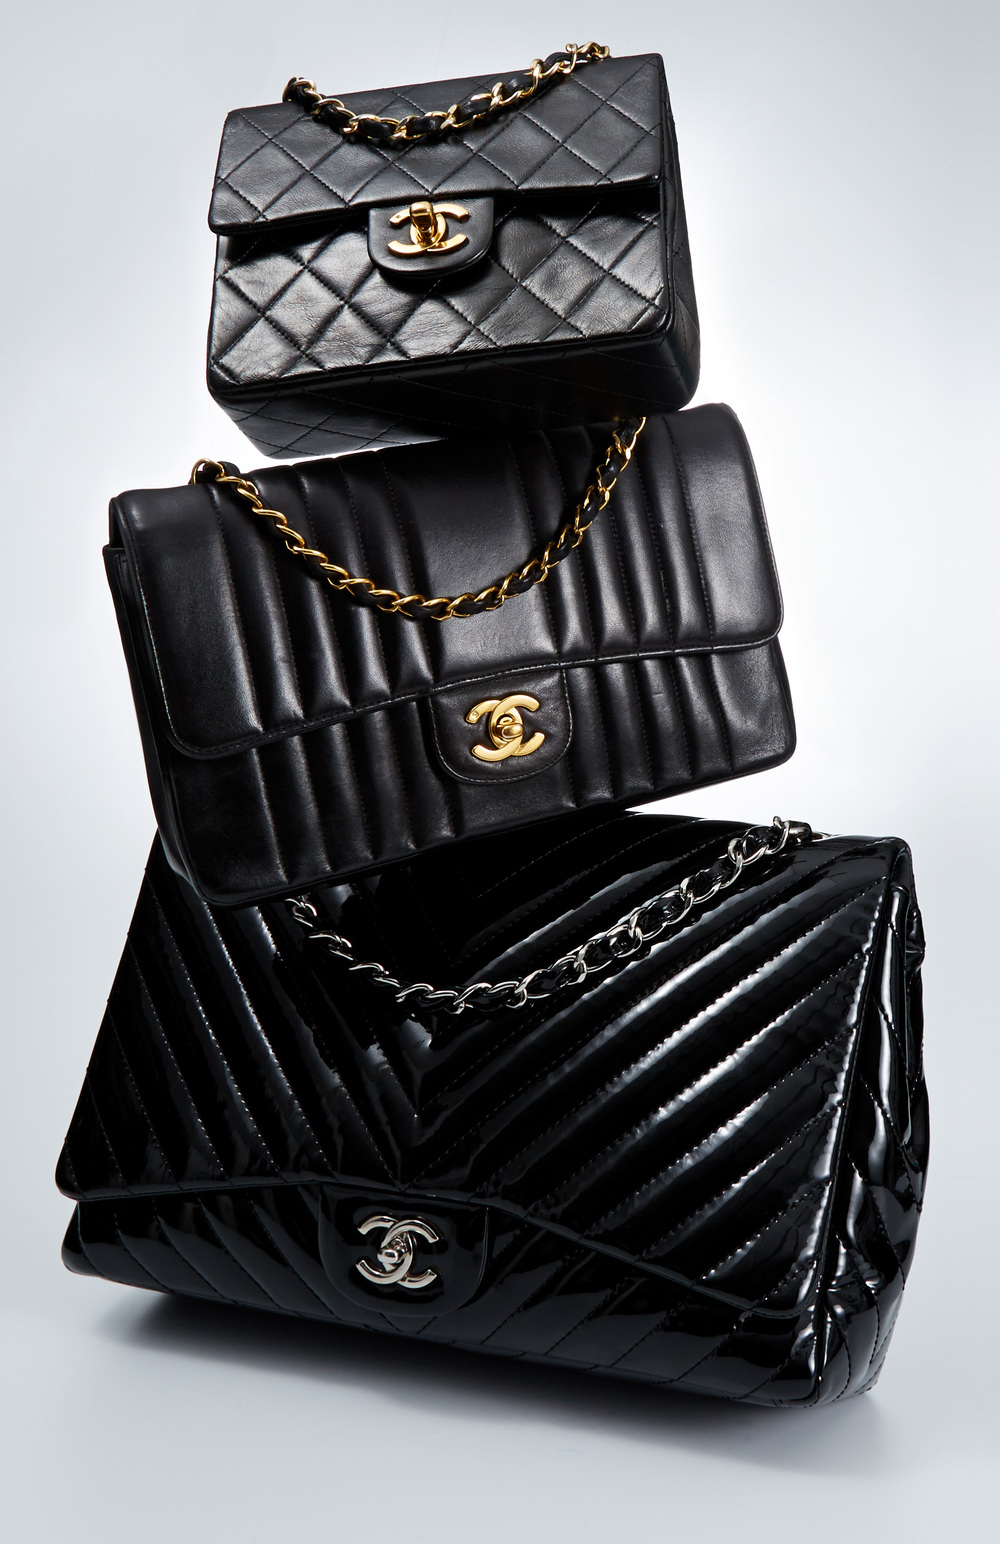 VINTAGE_CLASSIC_BLACK_HANDBAGS_REPEAT_WACC_1084595863_EDITORIAL_124.jpg